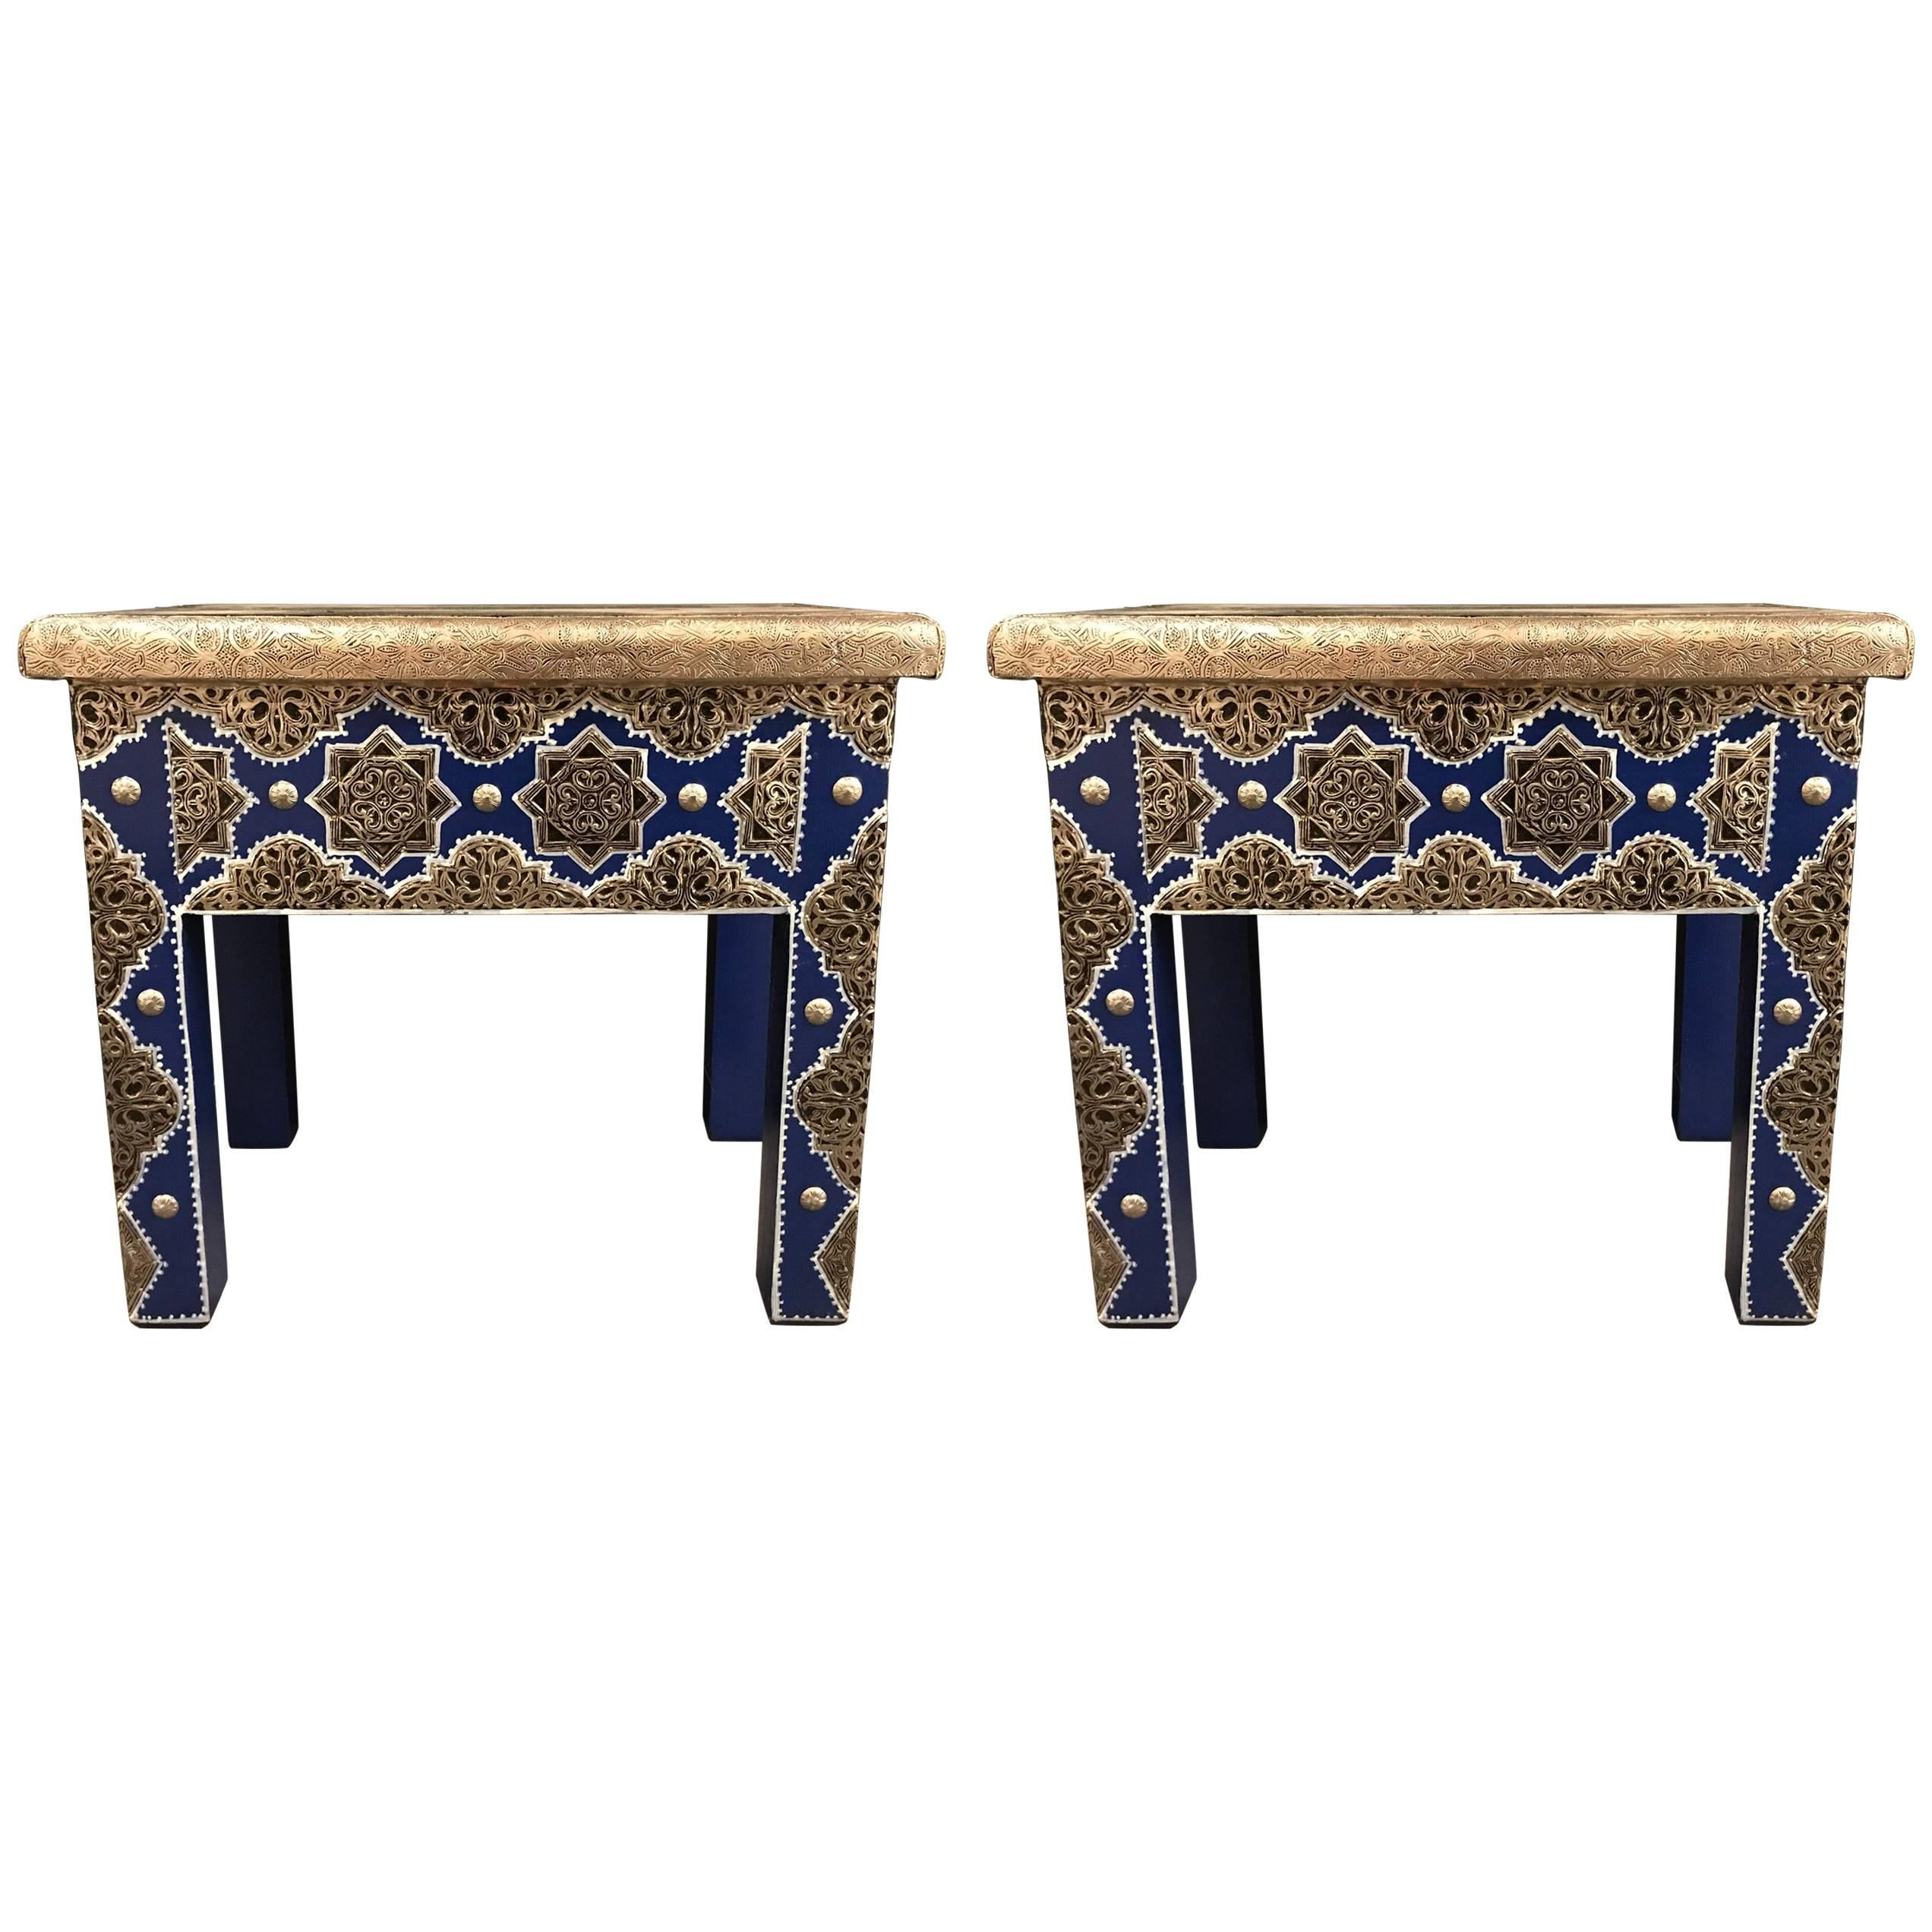 Pair Of Moroccan Silver Metal Inlaid Blue Rectangle Side Table